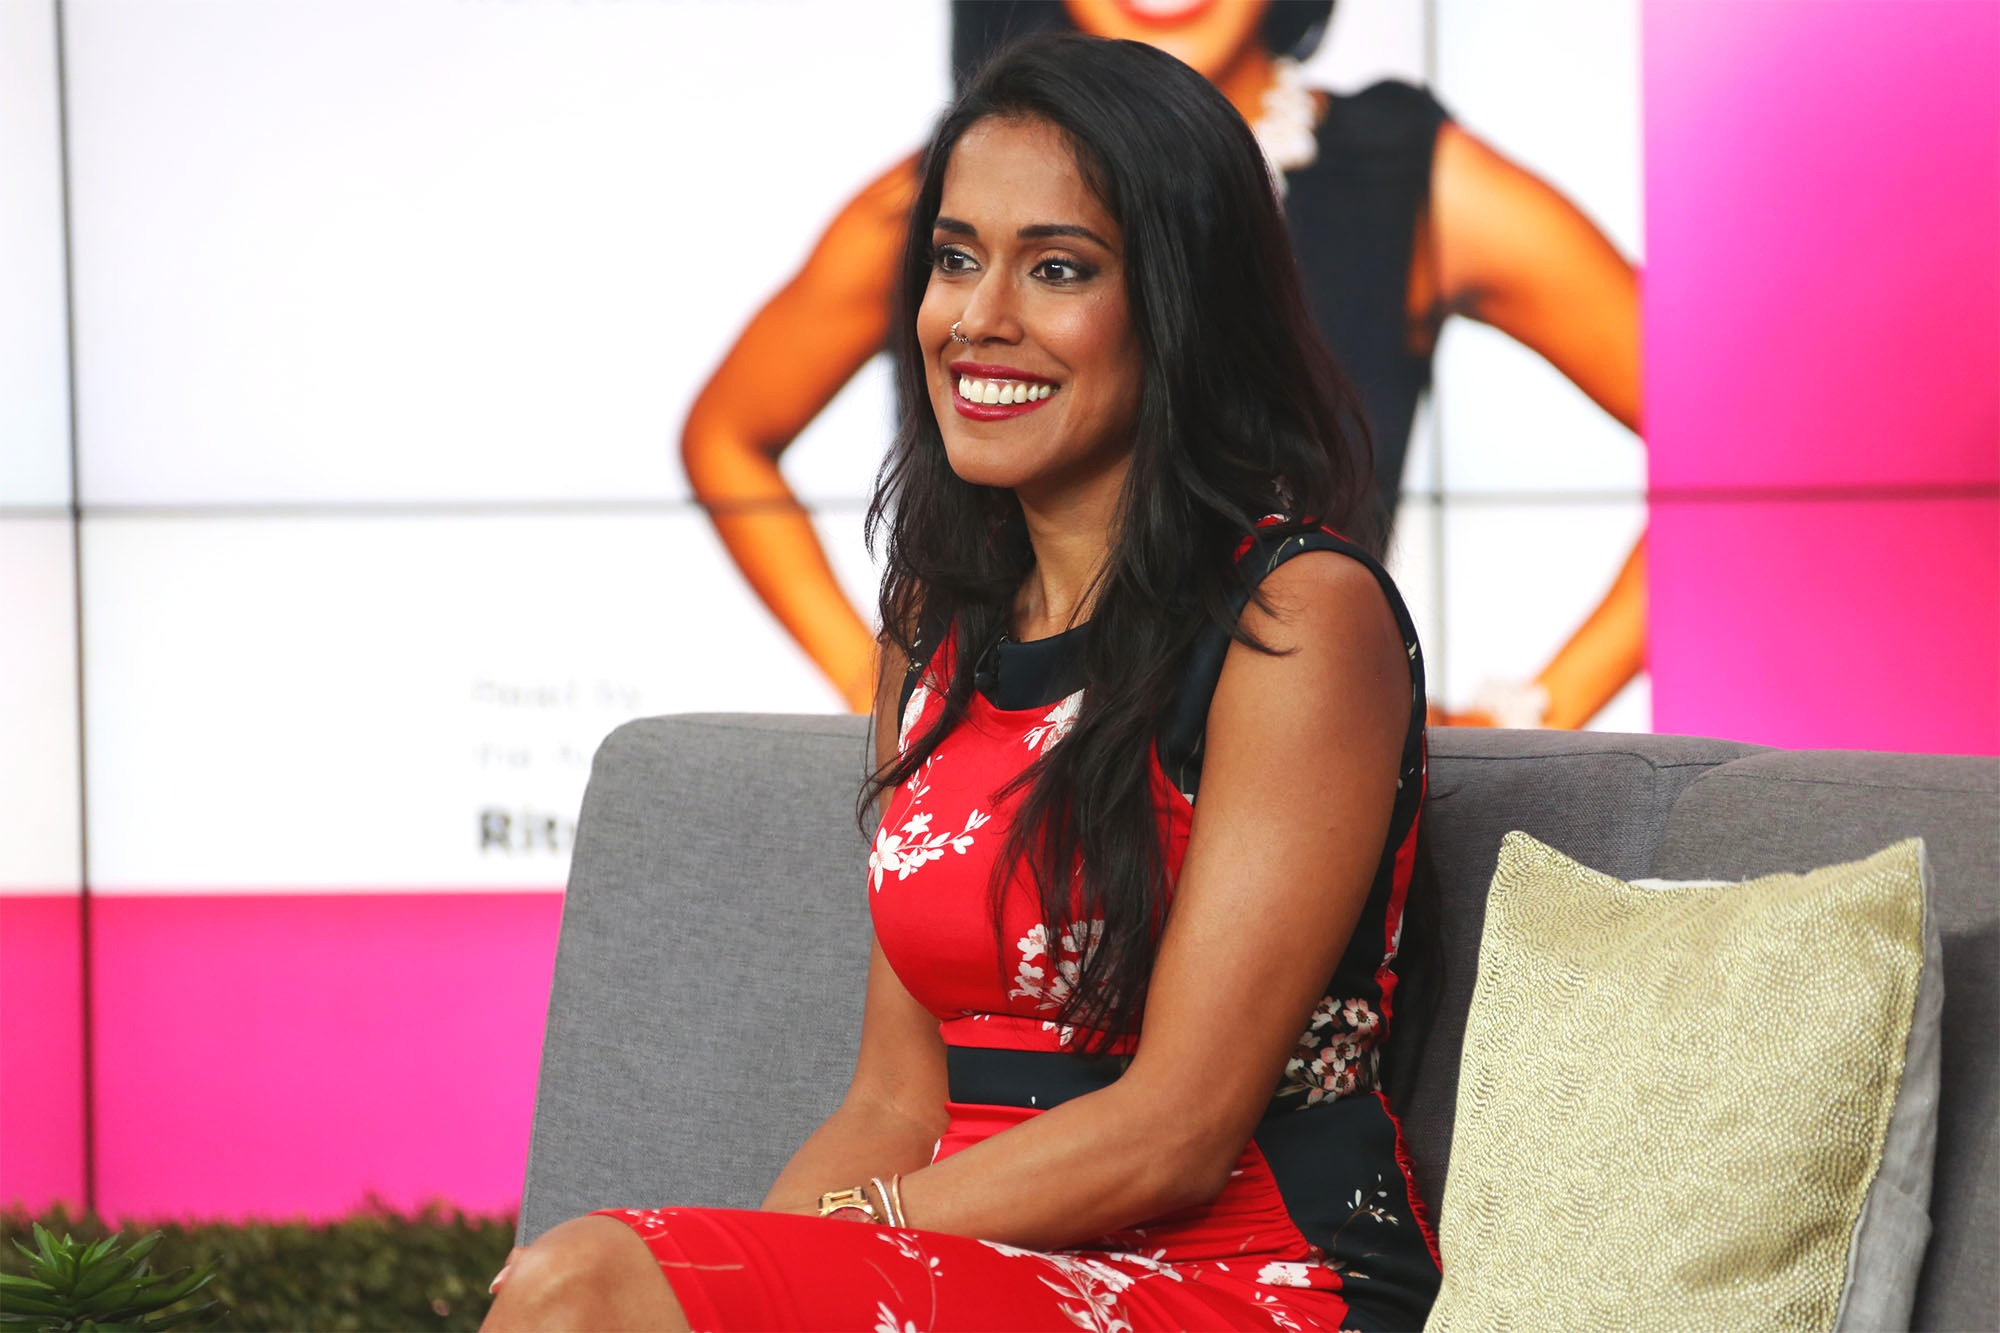 Ritu Bhasin smiling and sitting on a coach on set at CTV's The Social talk show wearing a fitted res dress with black panels on the side.